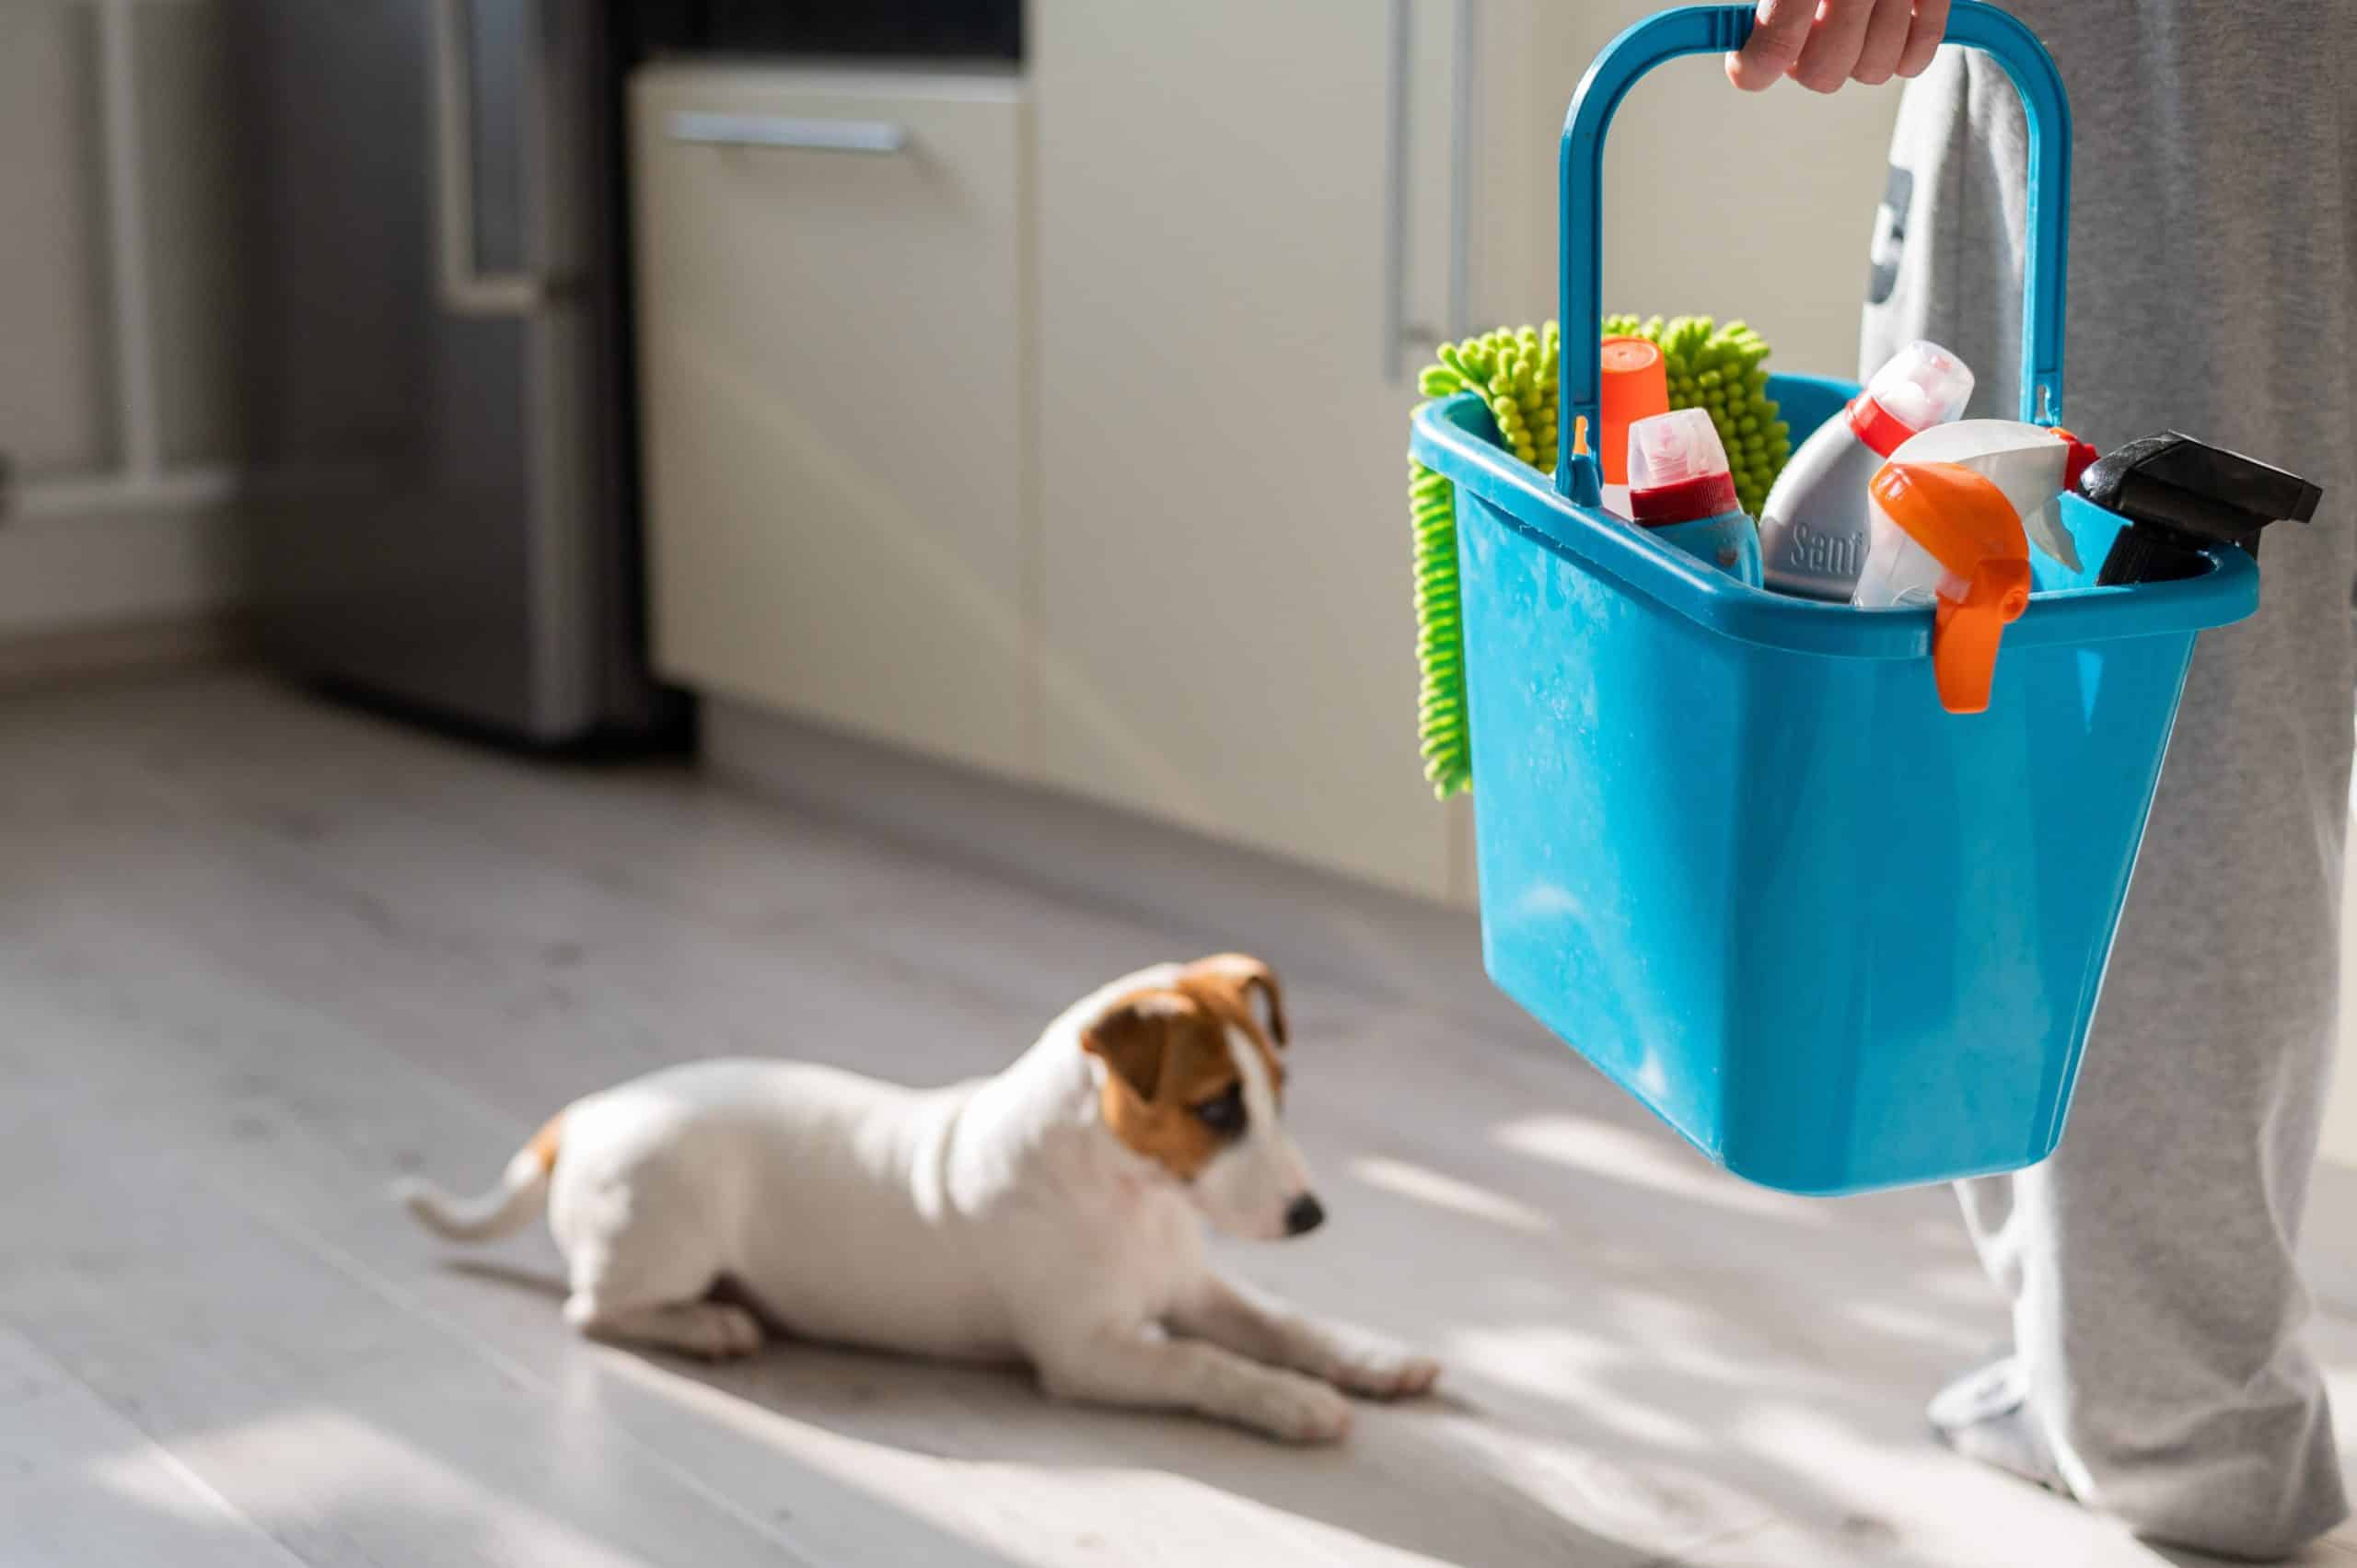 Woman holds bucket of cleaning supplies while Jack Russell Terrier rests on clean floor.